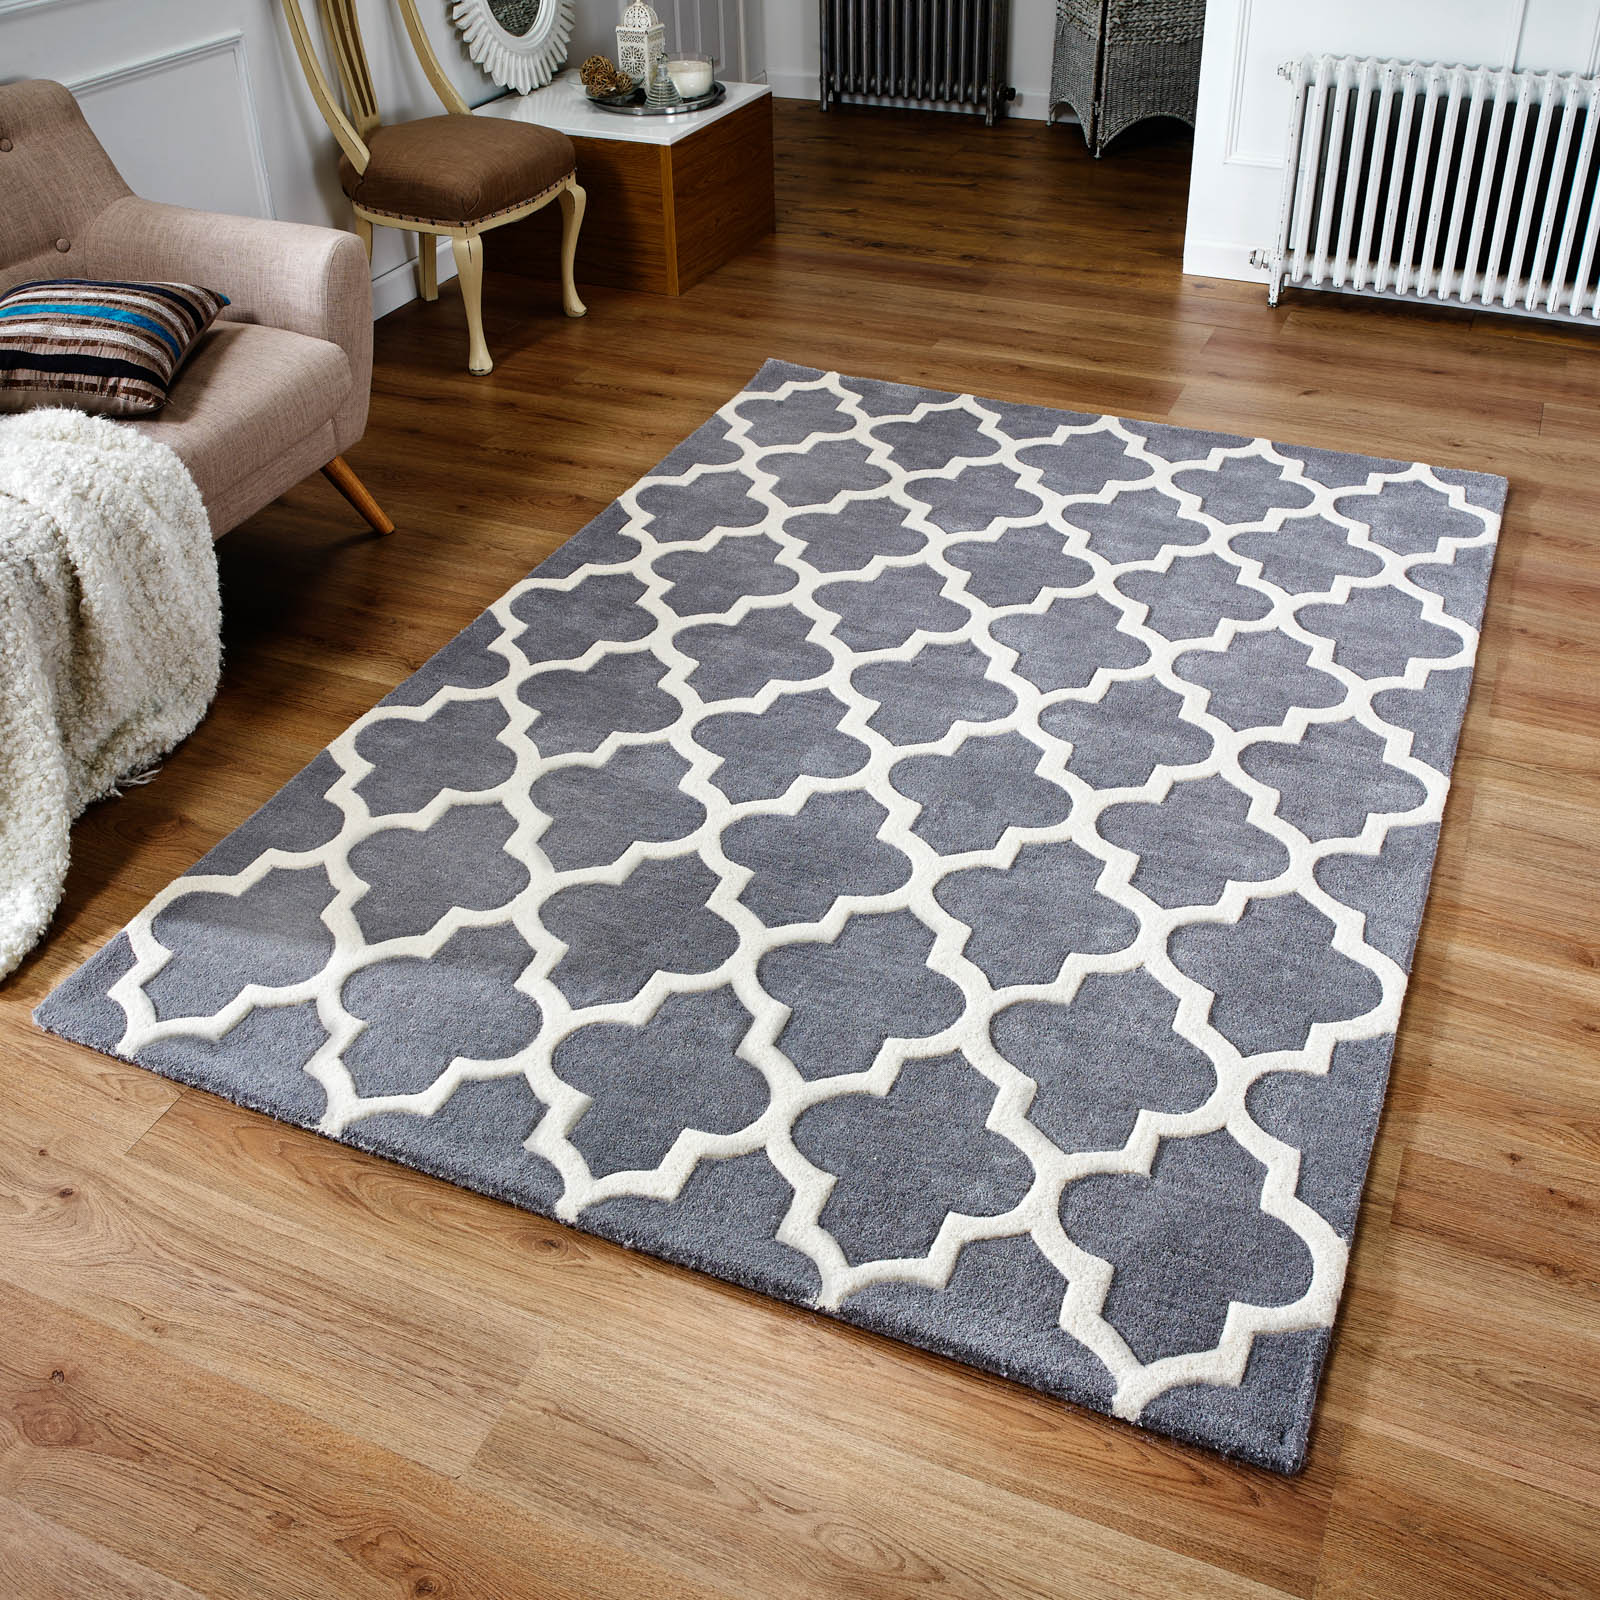 Arabesque Rug in Grey